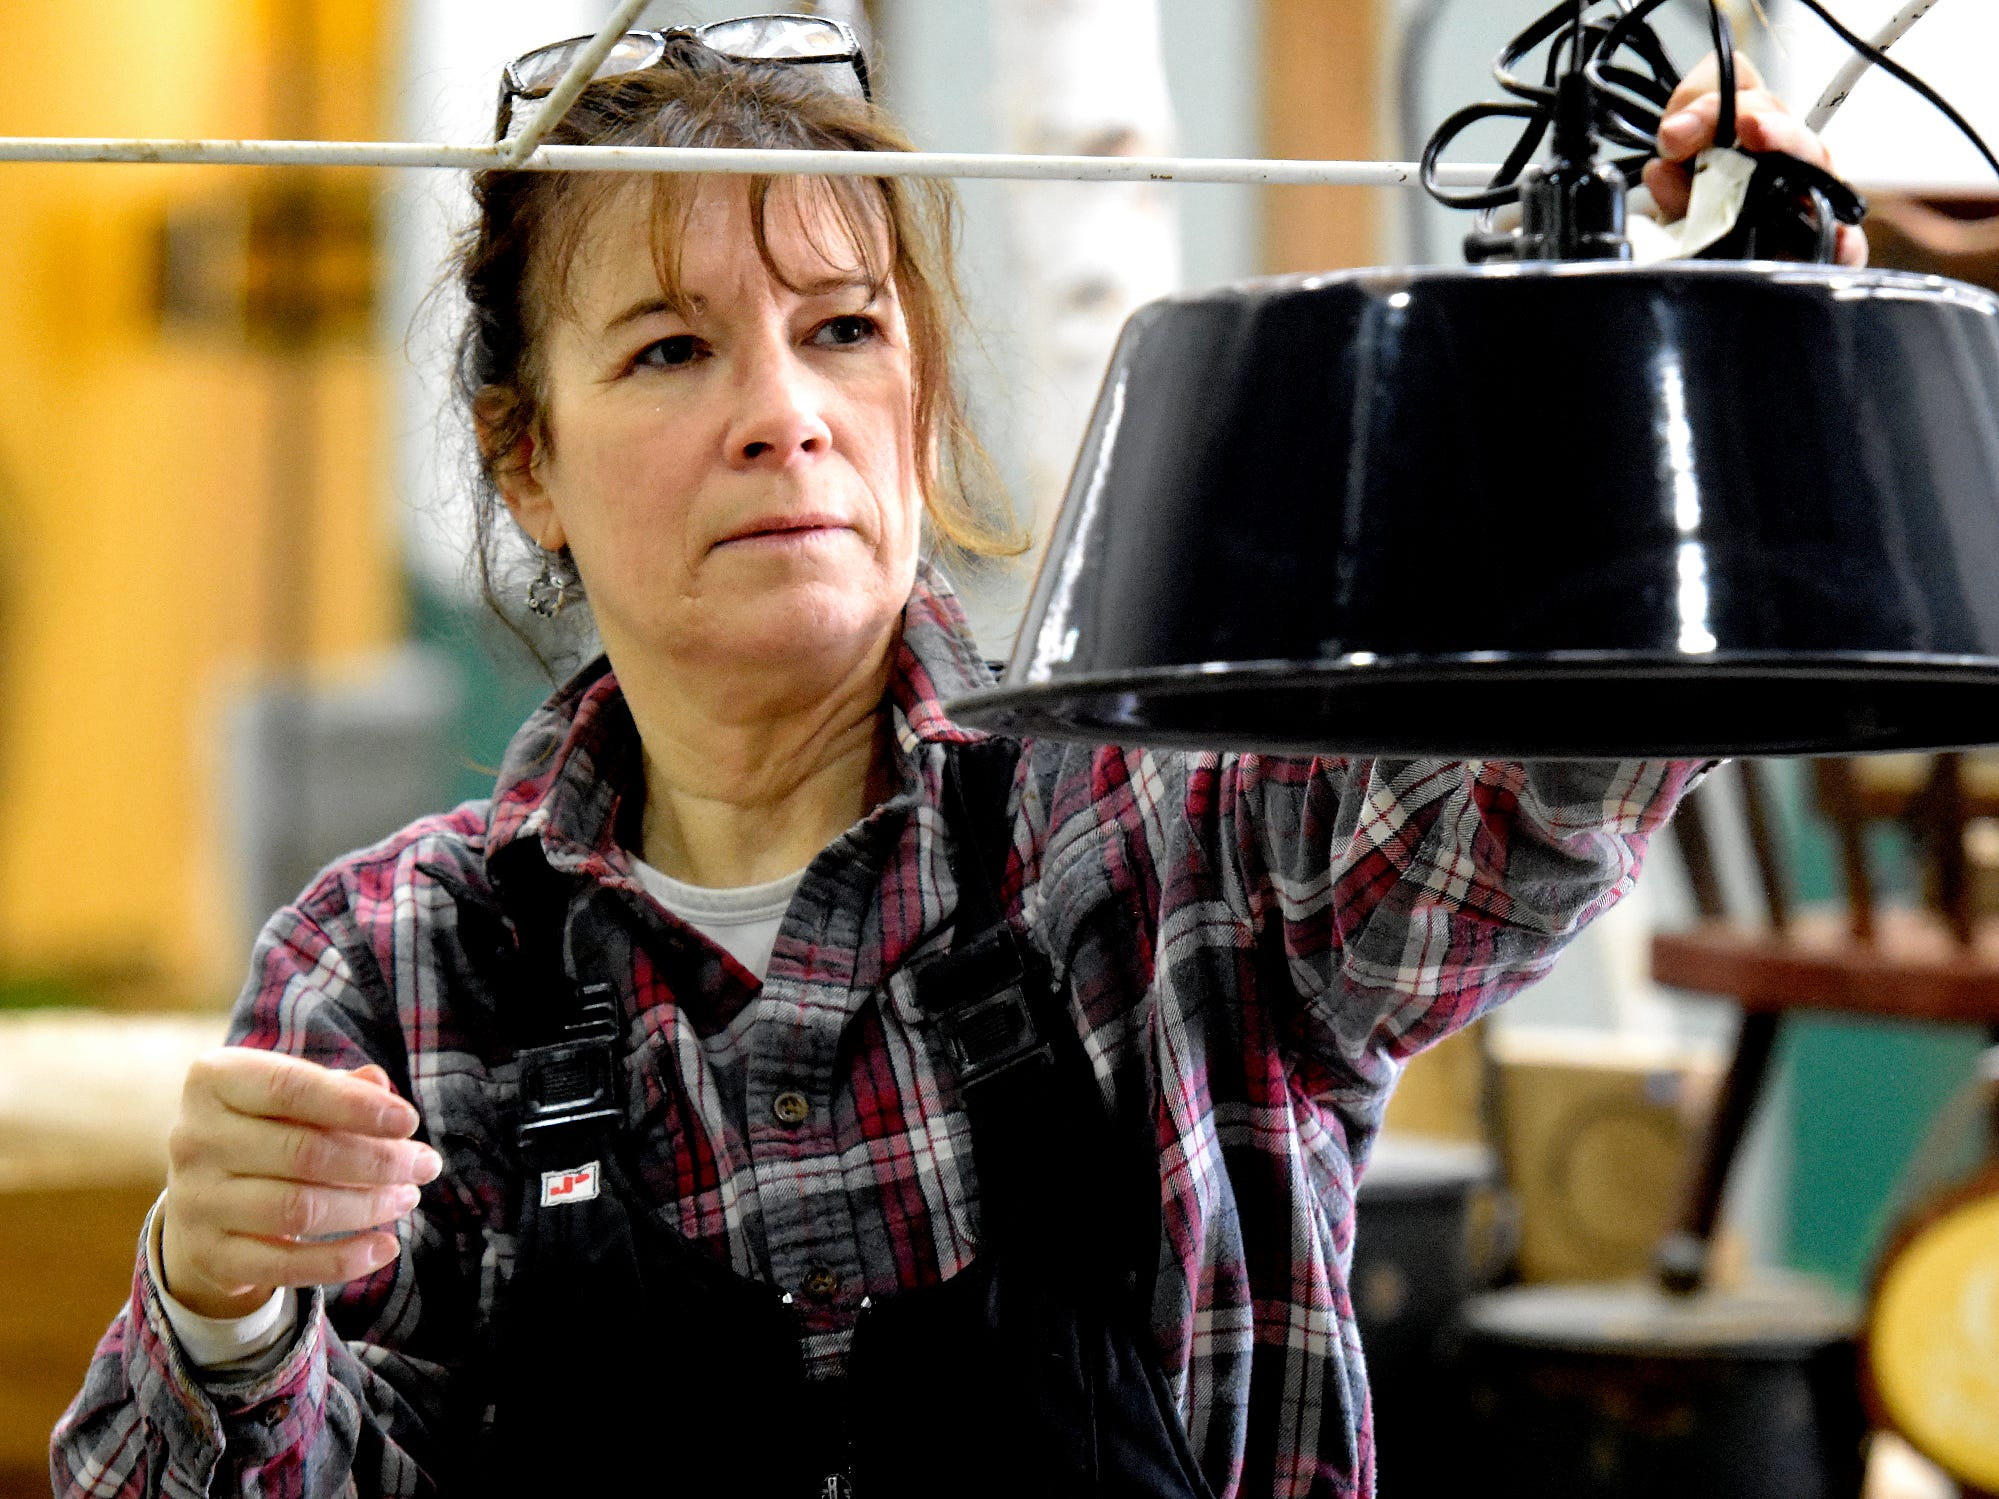 """Carolyn Bupp, co-owner of Cross Creek Farm in Codorus Township, prepares the business's exhibit at the PA Garden Show of York Wednesday, Feb. 27, 2019. The show, themed """"Flowers on Parade,"""" is in Memorial Hall at the York Expo Center March 1-3. Hours Friday and Saturday are 10 a.m. to 8 p.m., and Sunday 10 a.m. to 5 p.m. Admission for adults is $10. Children are free with multi-day passes and and senior discounts offered. Bill Kalina photo"""